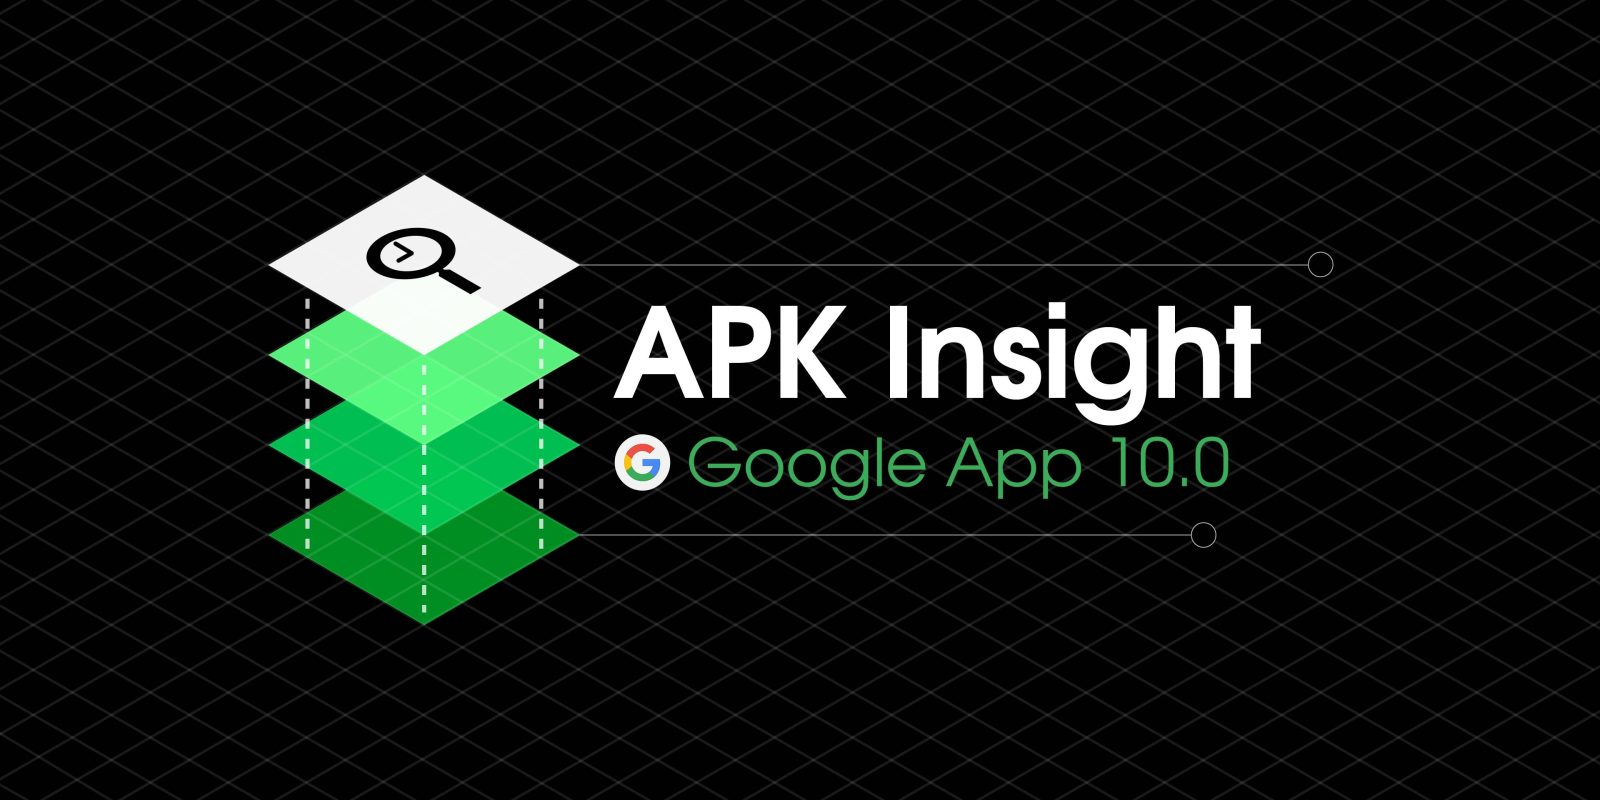 Google app 10.0 adds 'Recent languages' to Lens, continues work on Face Match [APK Insight]